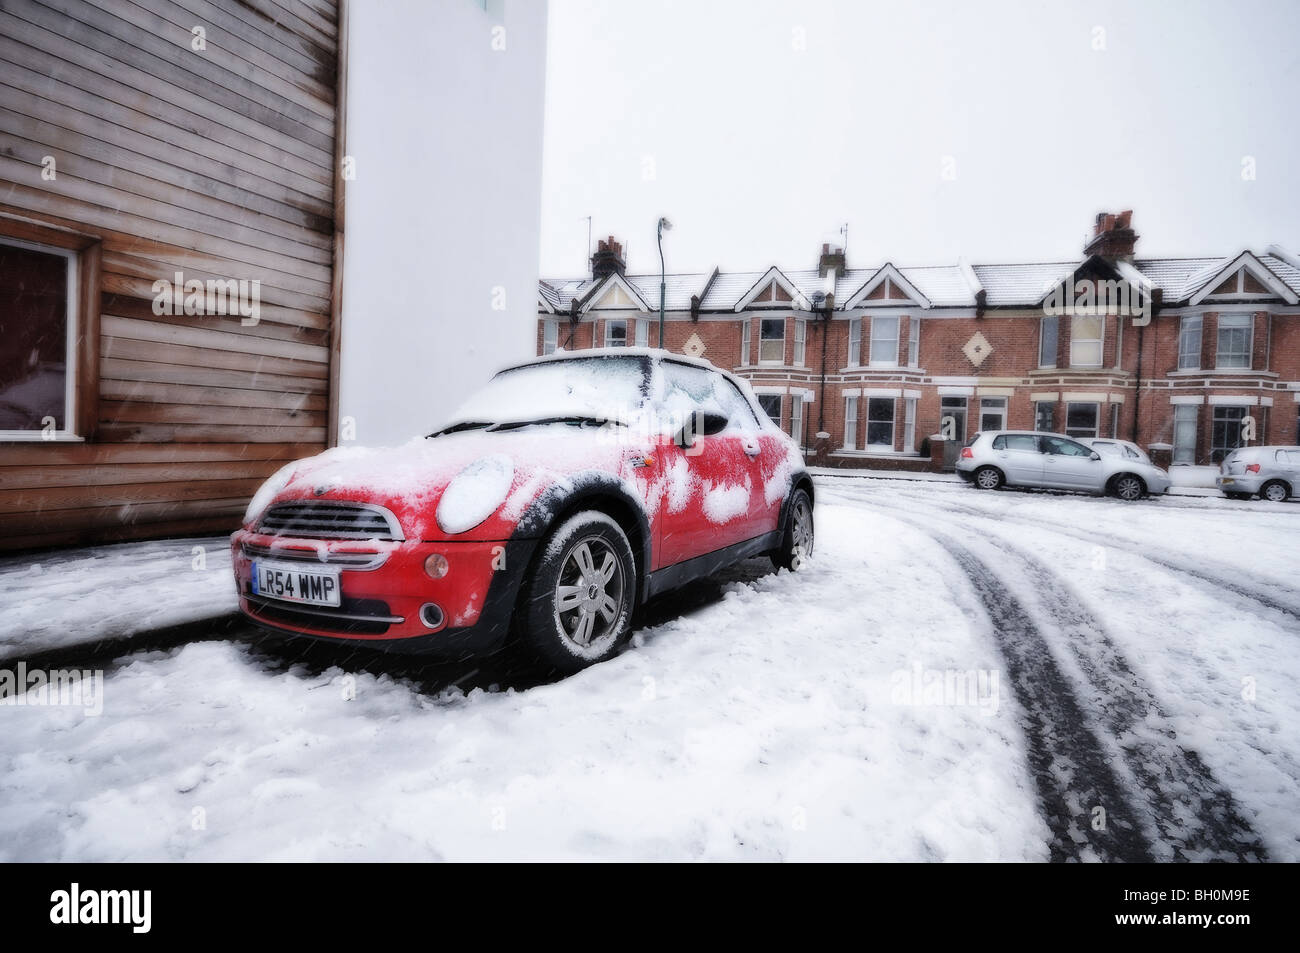 Snowing in Sussex - image of a residential street covered by snow with red Mini Cooper in the foreground - Gaussian - Stock Image